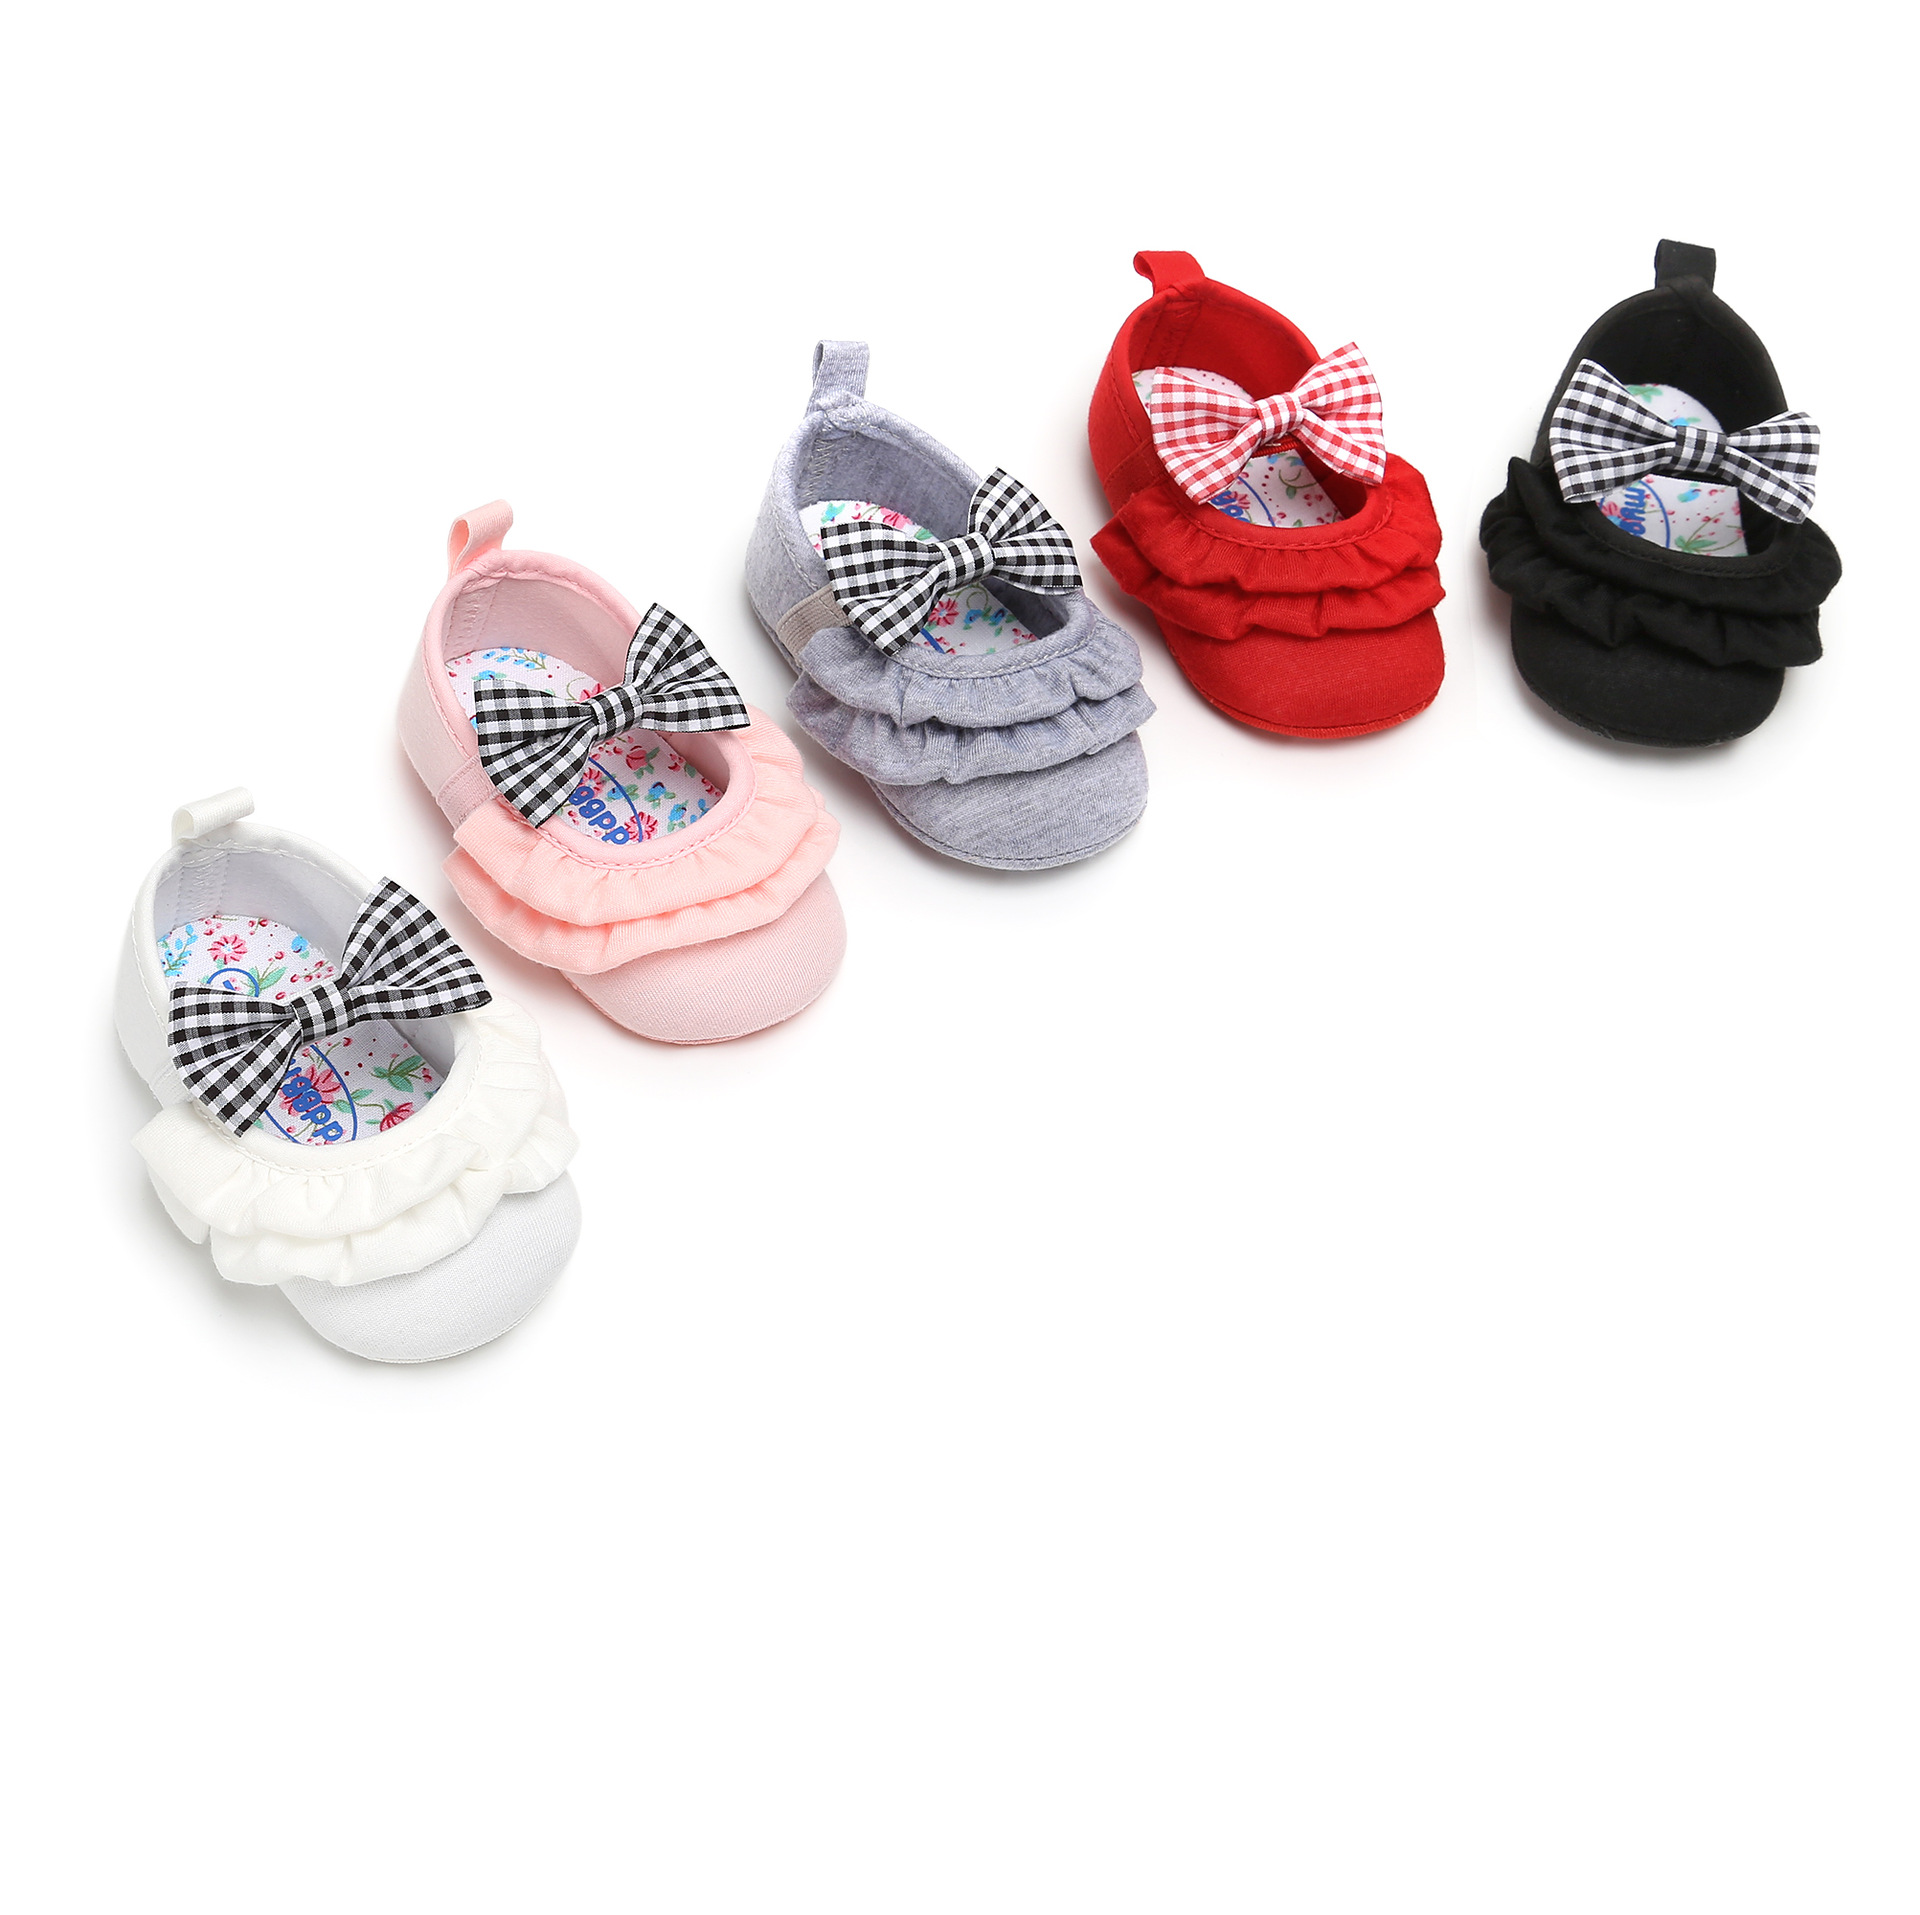 04ef4737d46a5 Newborn Baby Girls Princess Shoes First Walkers Soft Sole Nonslip Footwear Hot  Moccs Shoe Fashion Bowknot